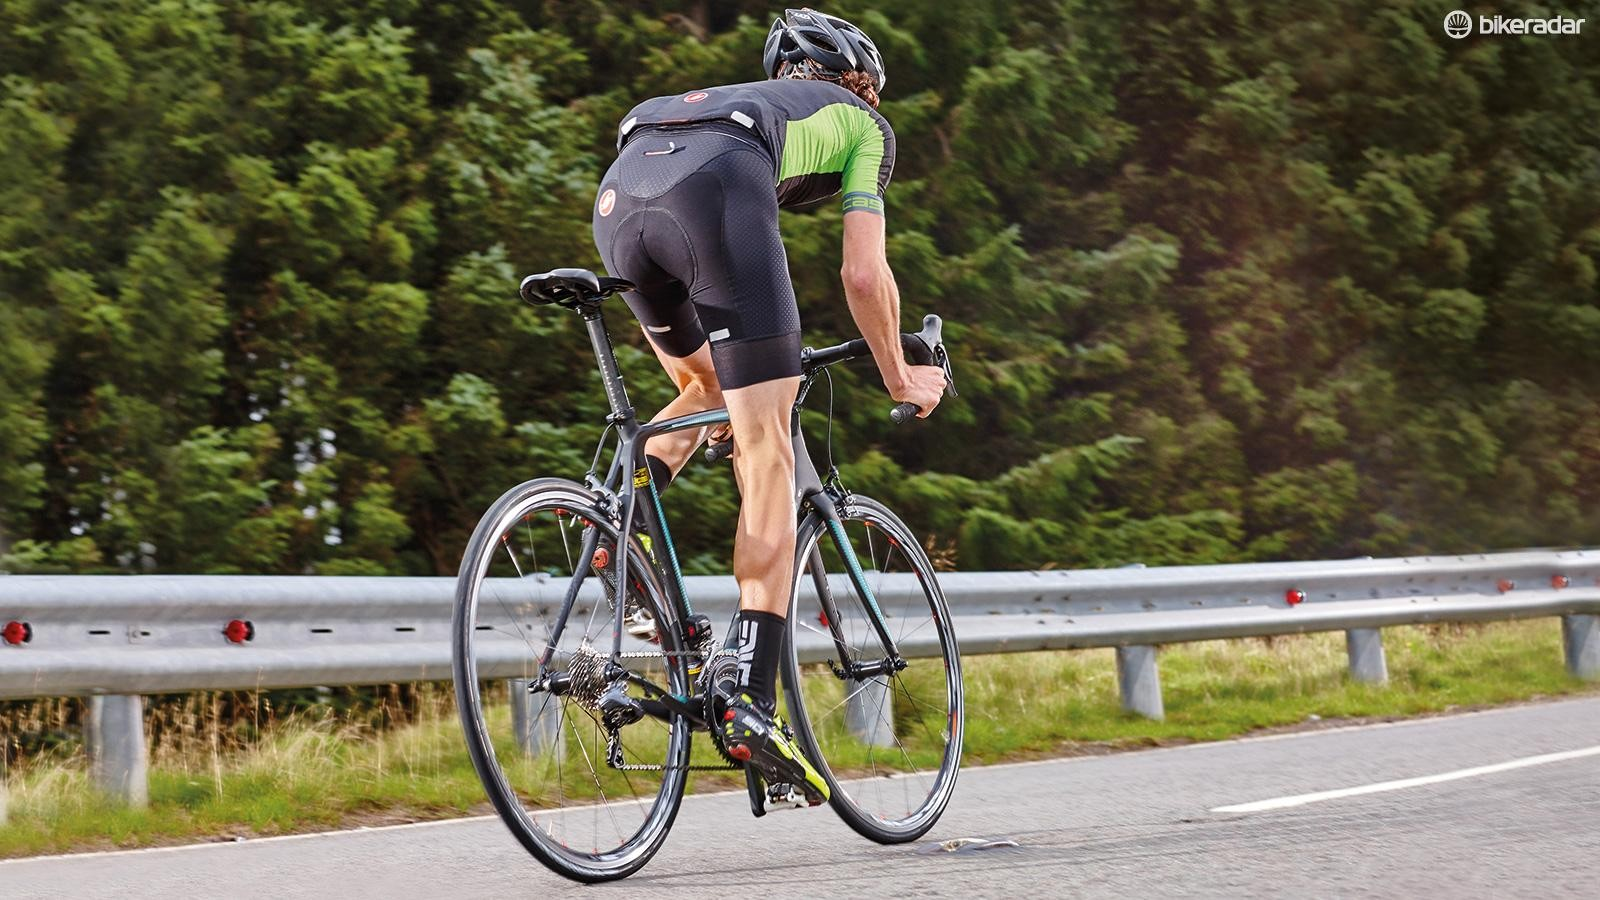 Ultegra's excellent brakes complement the always impeccable electronic shifting